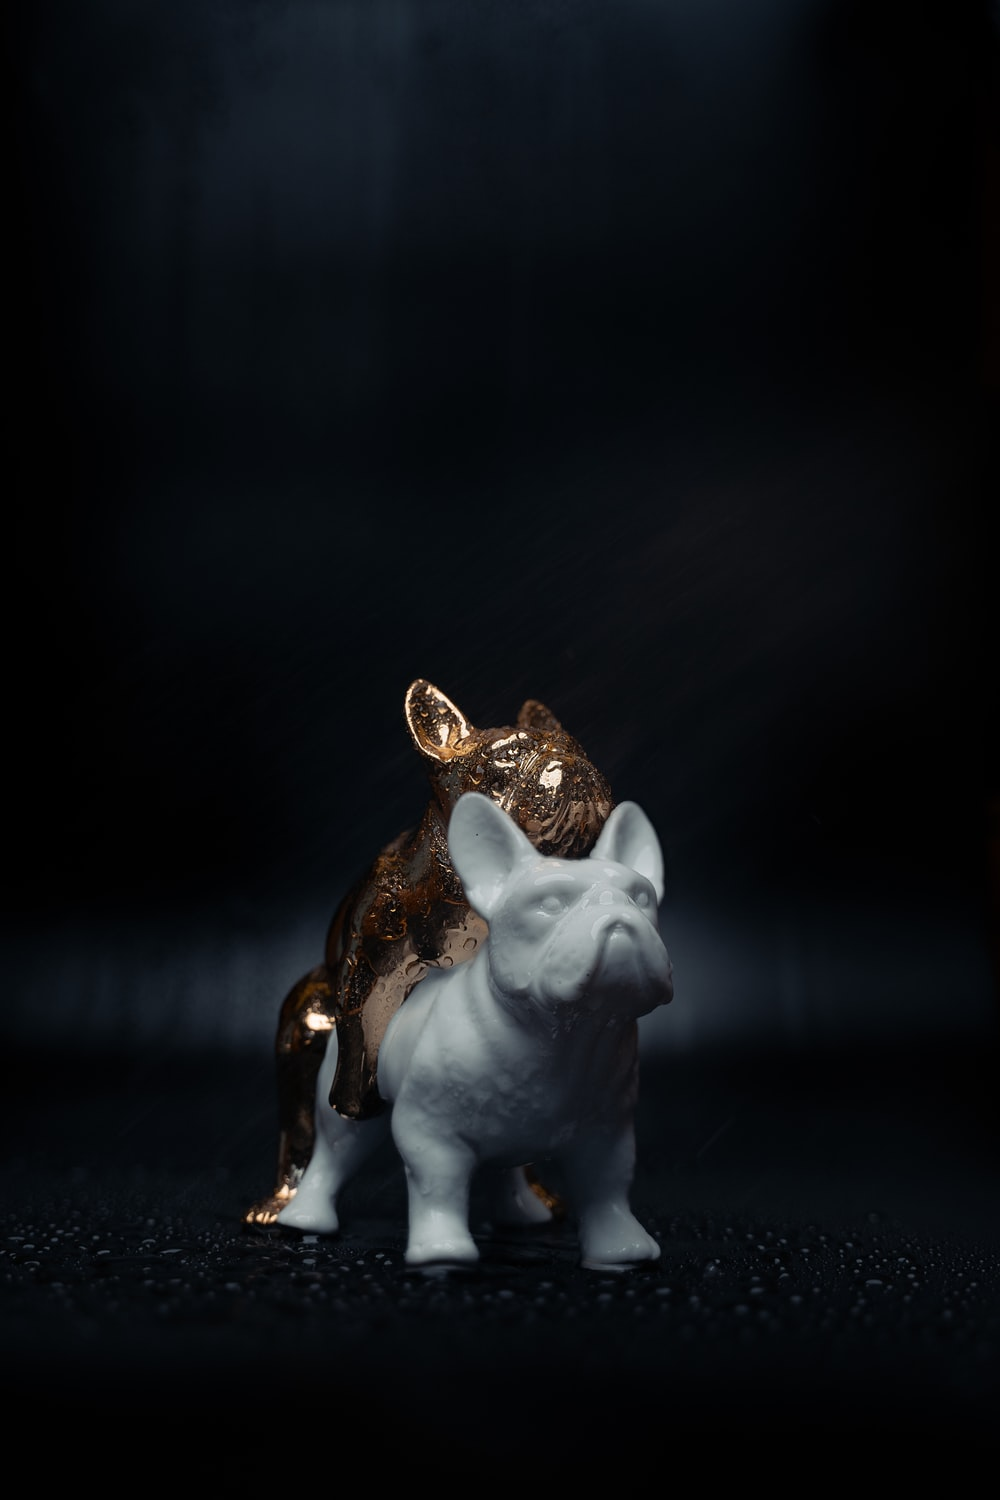 white and brown ceramic dog figurine